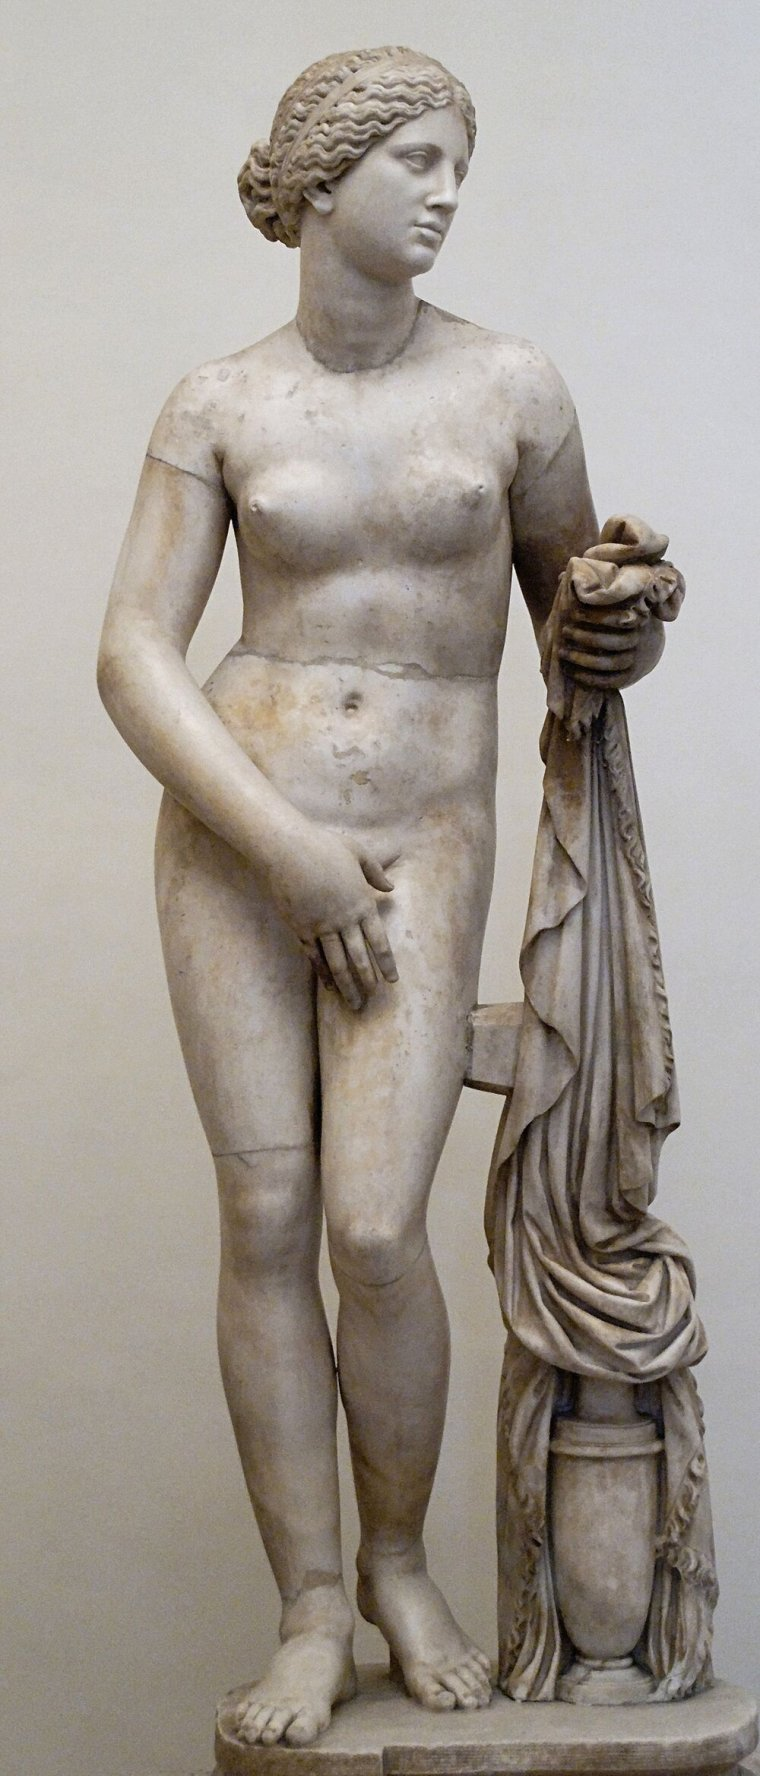 The statue Aphrodite of Knidos created in 350 BCE was the first to monumental statue to be created showing a female in the nude. At the time women were widely regarded like property; victims to the unfortunately circumstances of their birth into a woman's body. The choice to show her naked is significant. Art historians theorize that the water jug is intended to suggest that she is about to take a bath, but it seems relevant that the is not looking coyly away, but her head is held nigh. To us, this is classic art. At the time it was created it was not well received as it depicted women far more powerfully than was considered the norm. Aphrodite's naked form is an artistic testament here to her power and equal status among the gods.   - Why is nudity in art relevant here? Art is symbolism, magick is symbolism, and art is magick! By studying the meaning behind these artistic choices it can give us insight and clues into why it become common practice in witchcraft and spirituality for nudity to be something of a virtue.